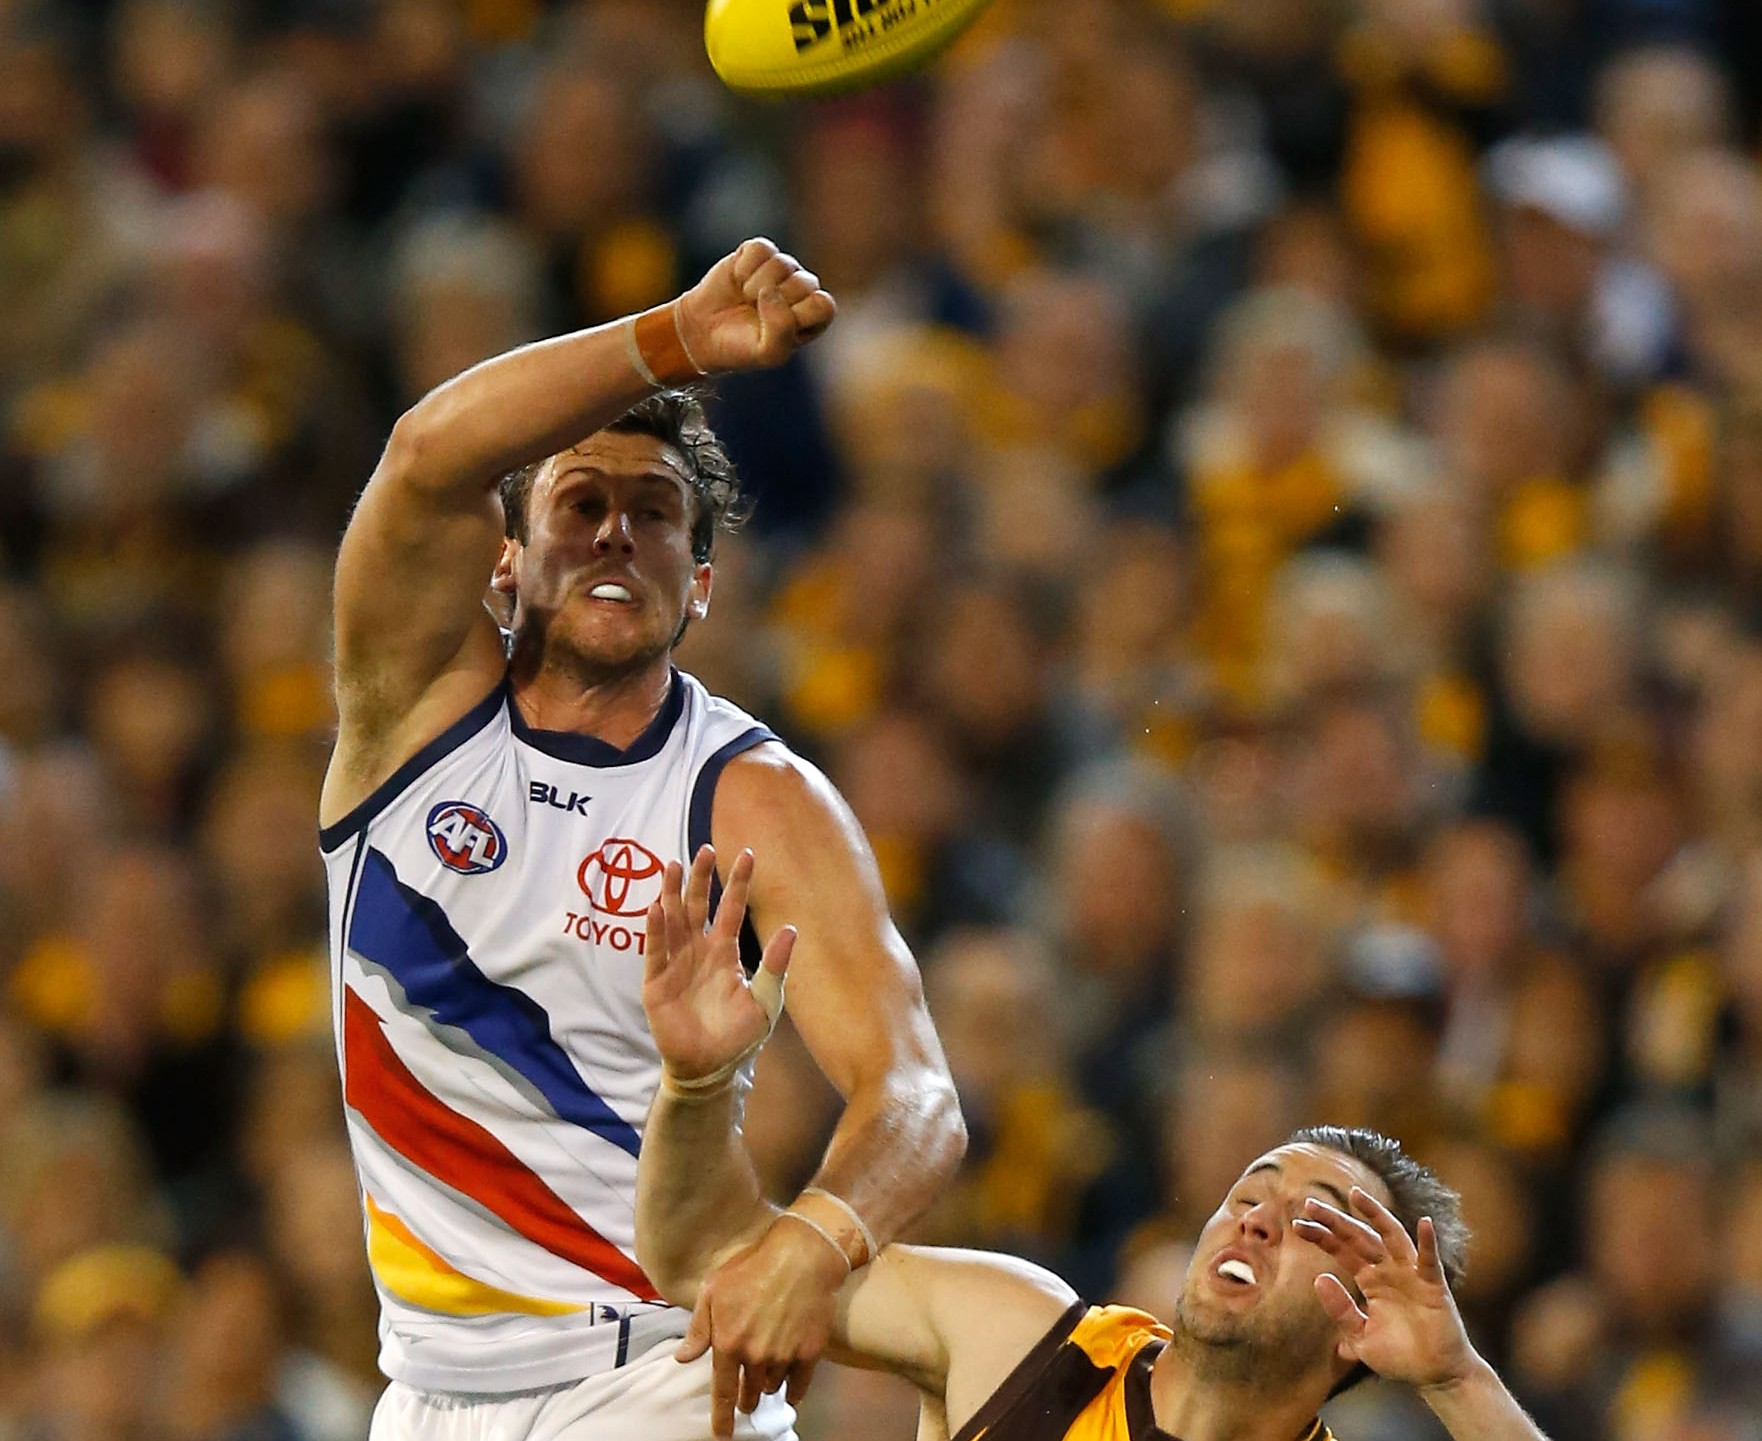 MELBOURNE, AUSTRALIA - SEPTEMBER 18: Kyle Hartigan of the Crows and Matthew Suckling of the Hawks during the 2015 AFL Second Semi Final match between the Hawthorn Hawks and the Adelaide Crows at the Melbourne Cricket Ground, Melbourne, Australia on September 18, 2015. (Photo by Michael Willson/AFL Media/Getty Images)